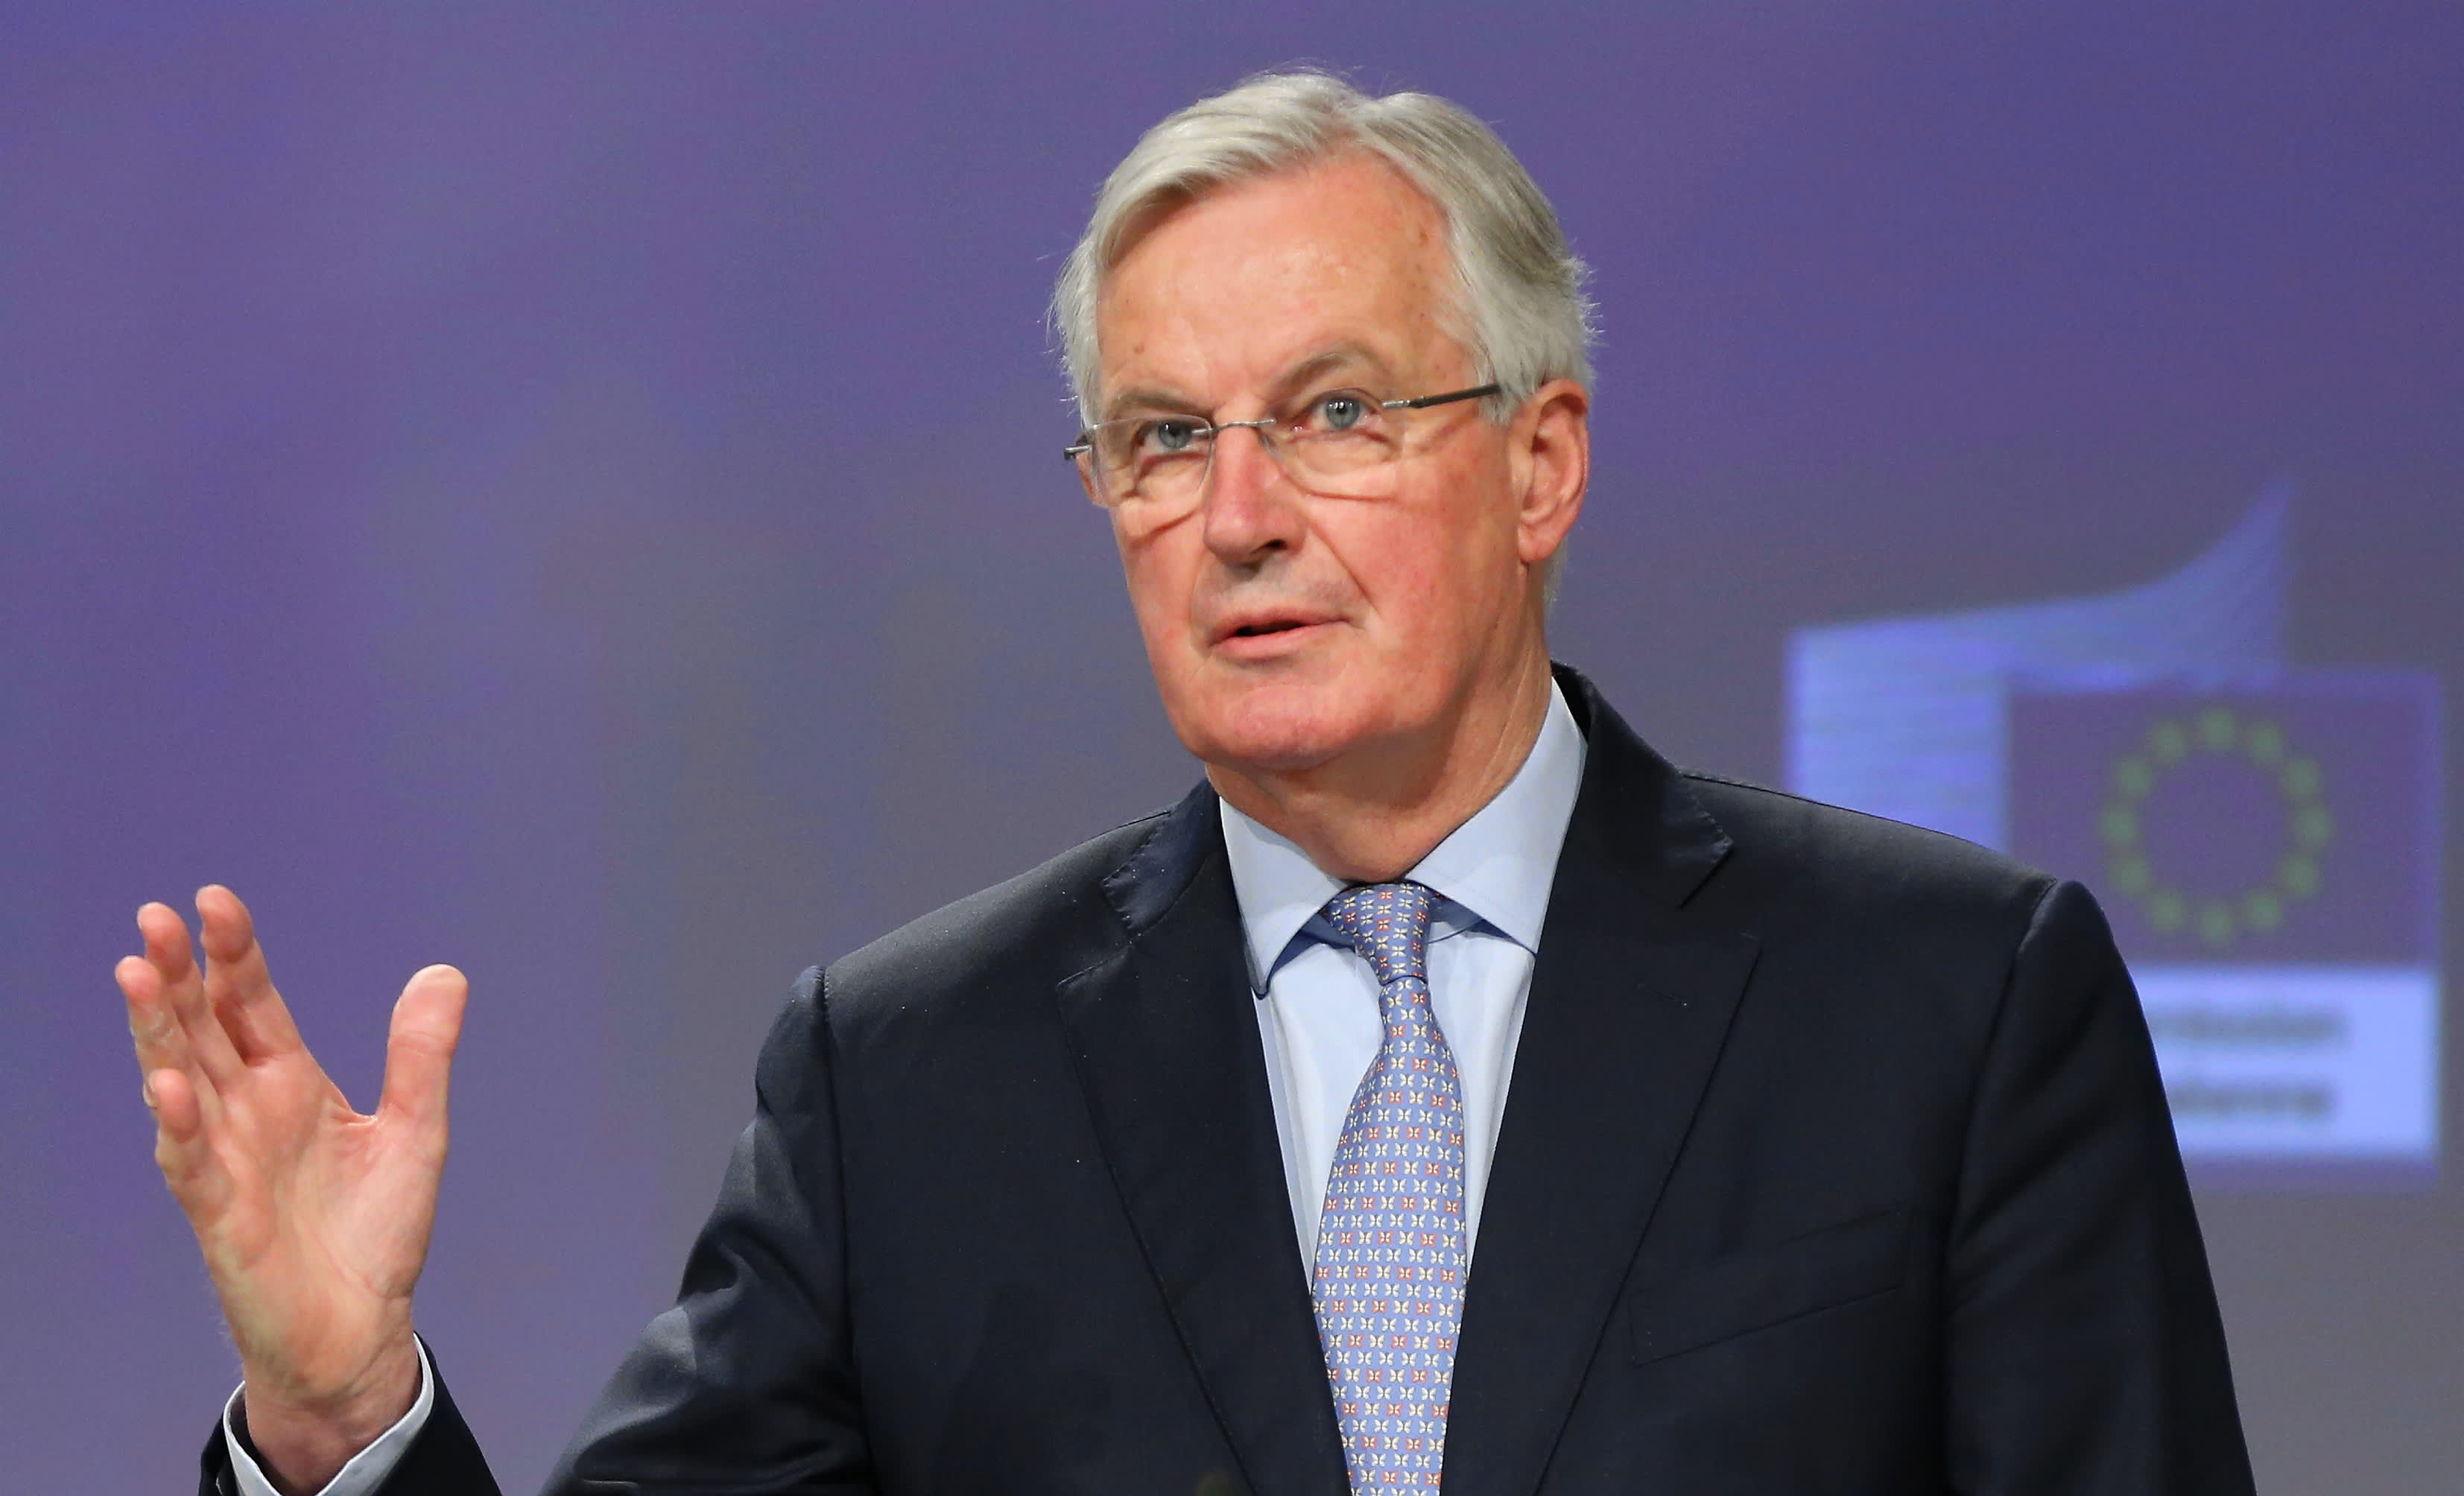 EU's Brexit negotiator Michel Barnier says he has tested positive for the coronavirus - CNBC 3